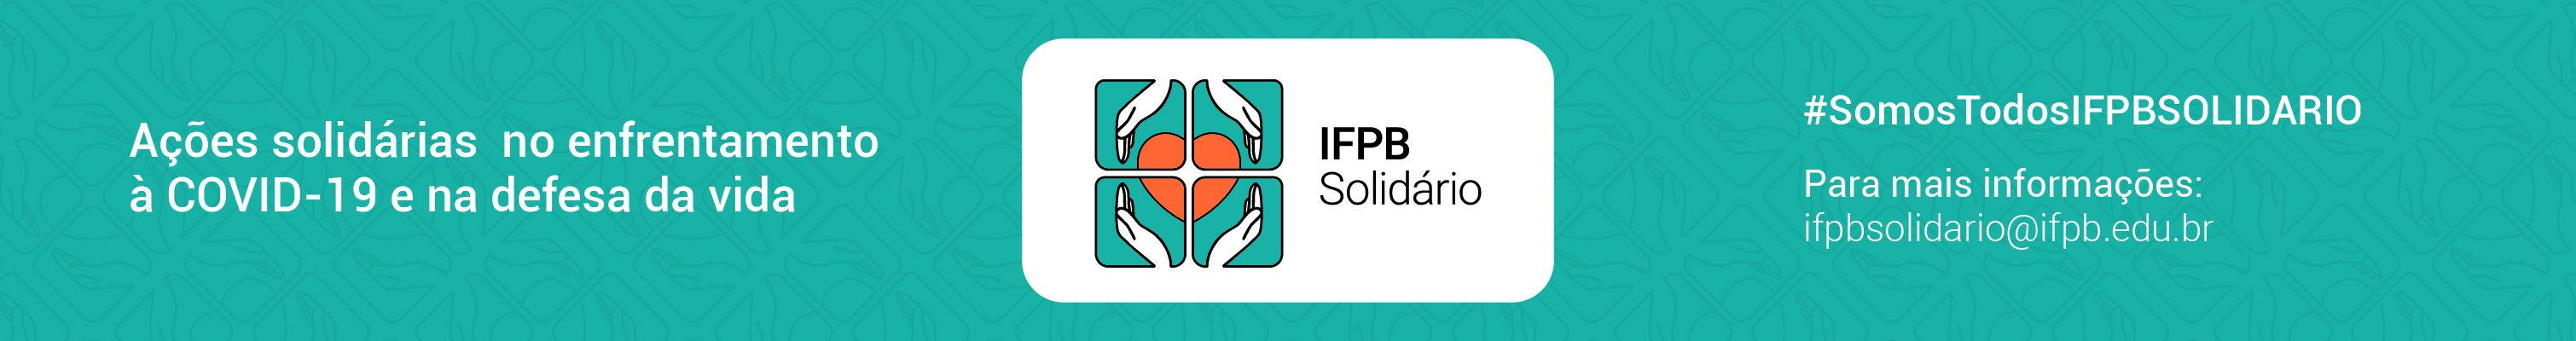 Banner IFPB Solidário